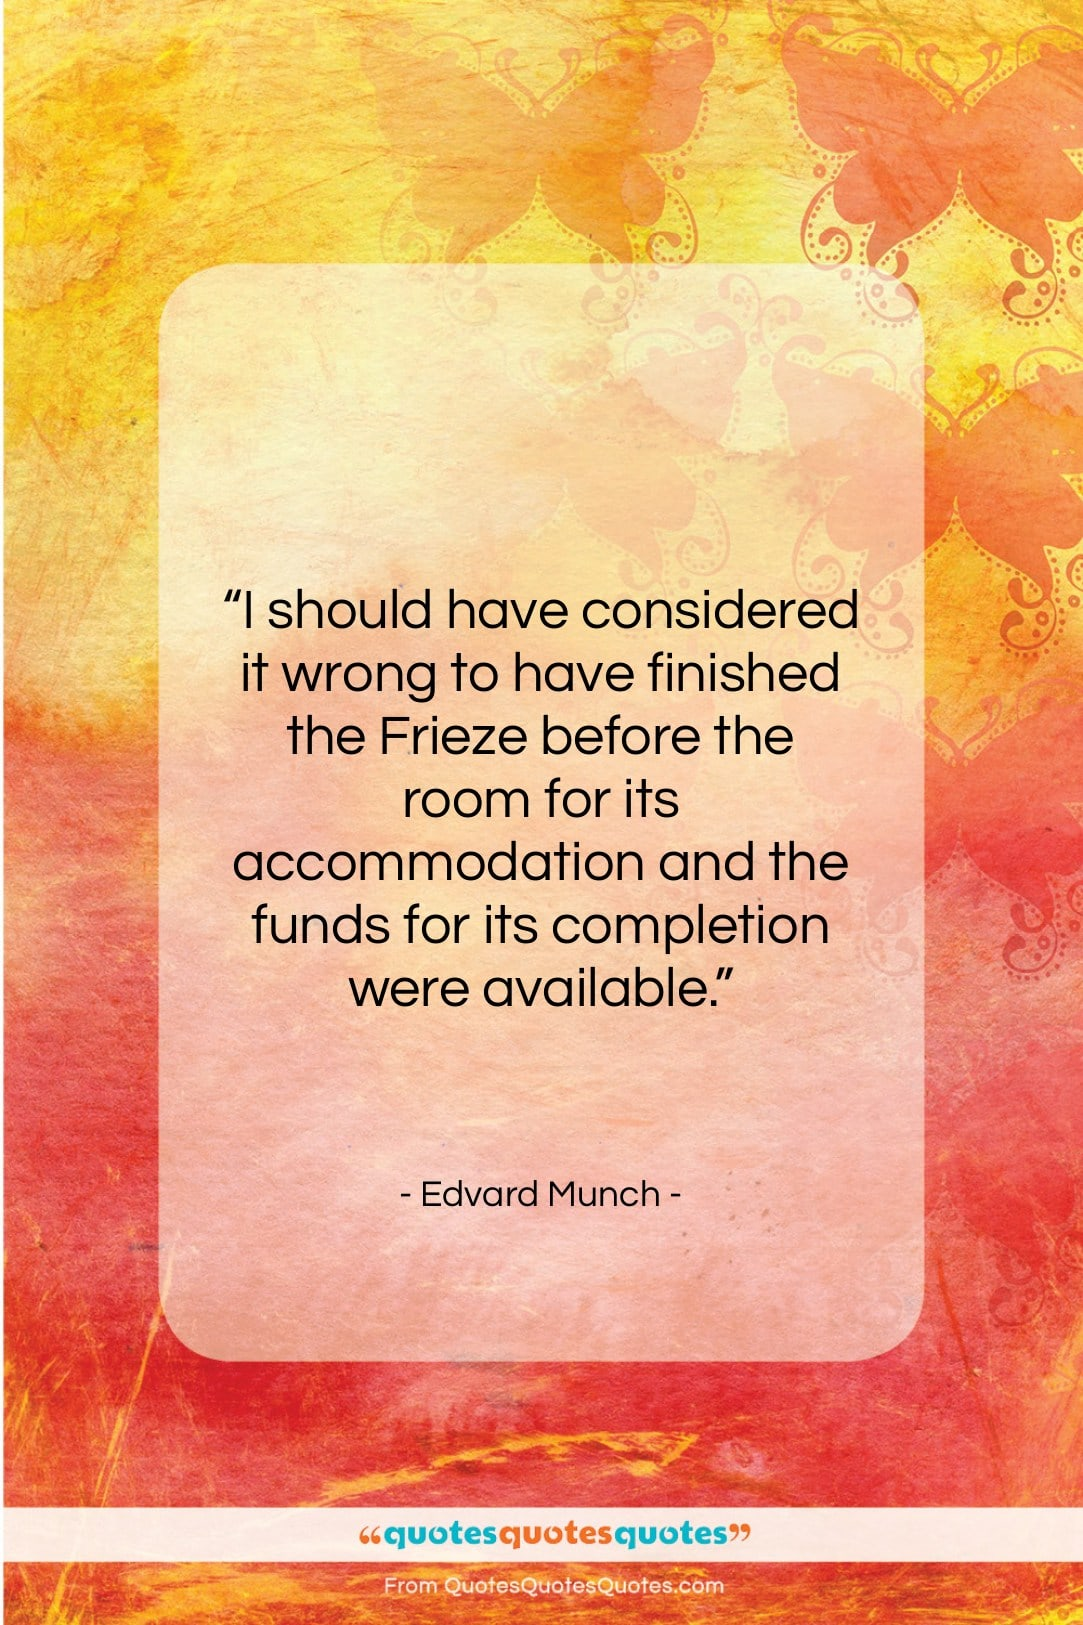 """Edvard Munch quote: """"I should have considered it wrong to…""""- at QuotesQuotesQuotes.com"""